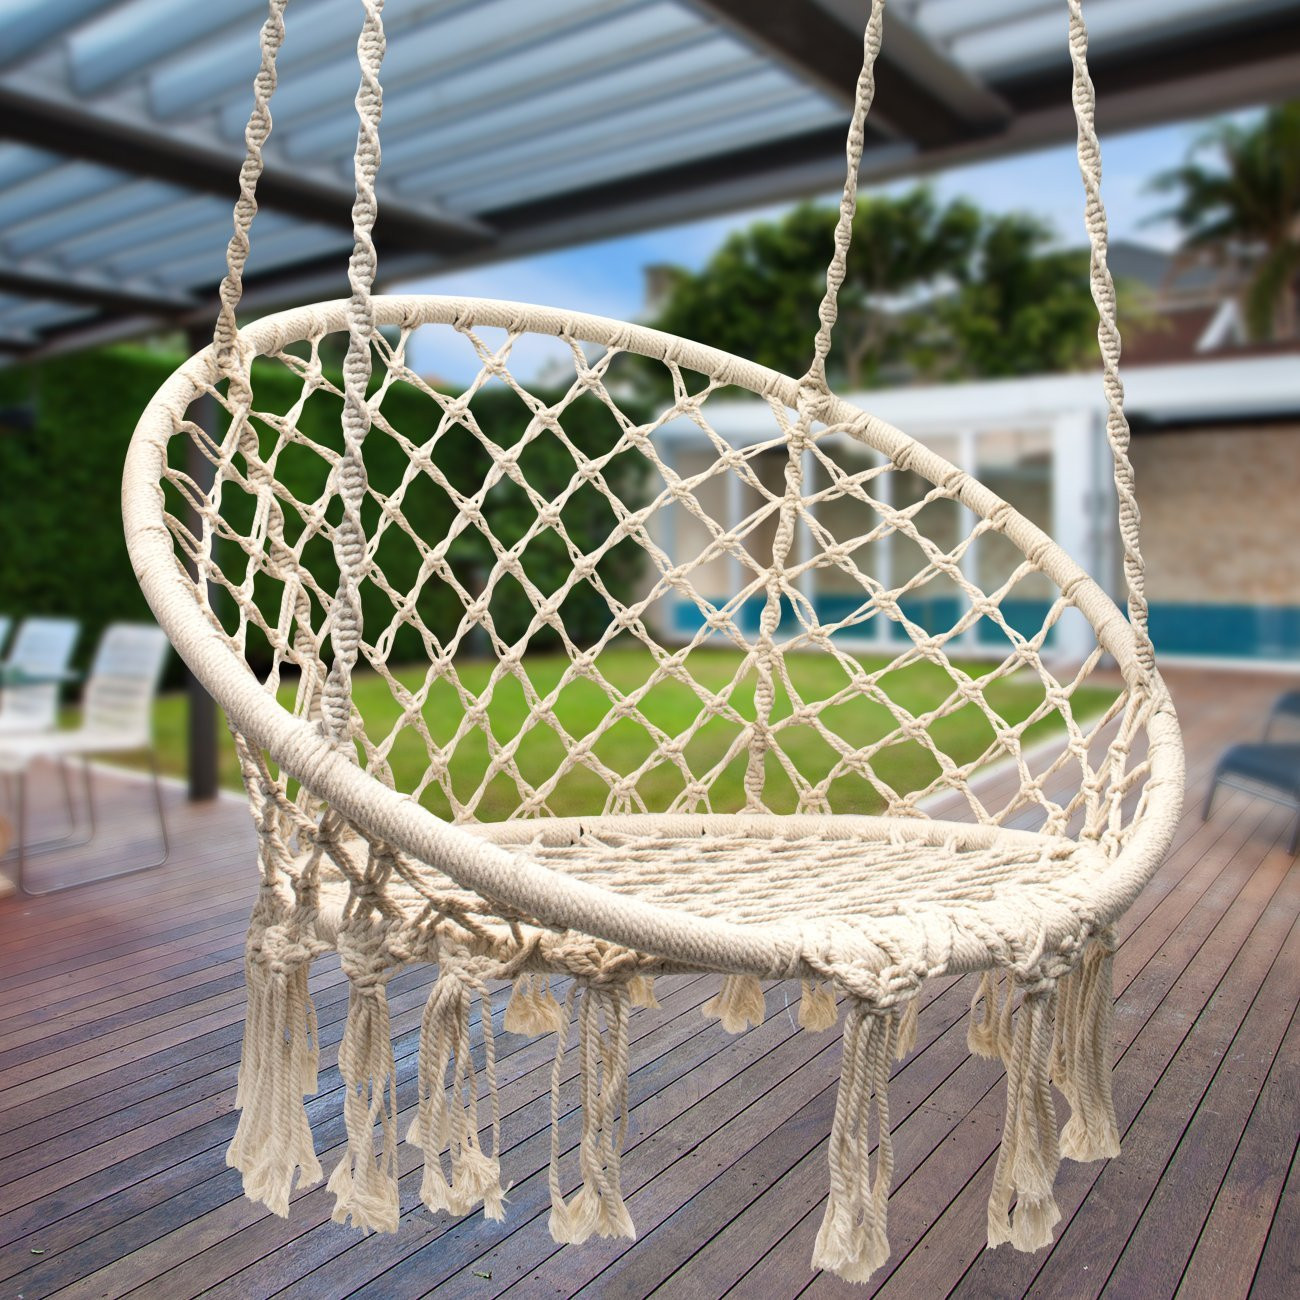 Best ideas about DIY Macrame Hanging Chair . Save or Pin DIY Hanging Macrame Chair Now.